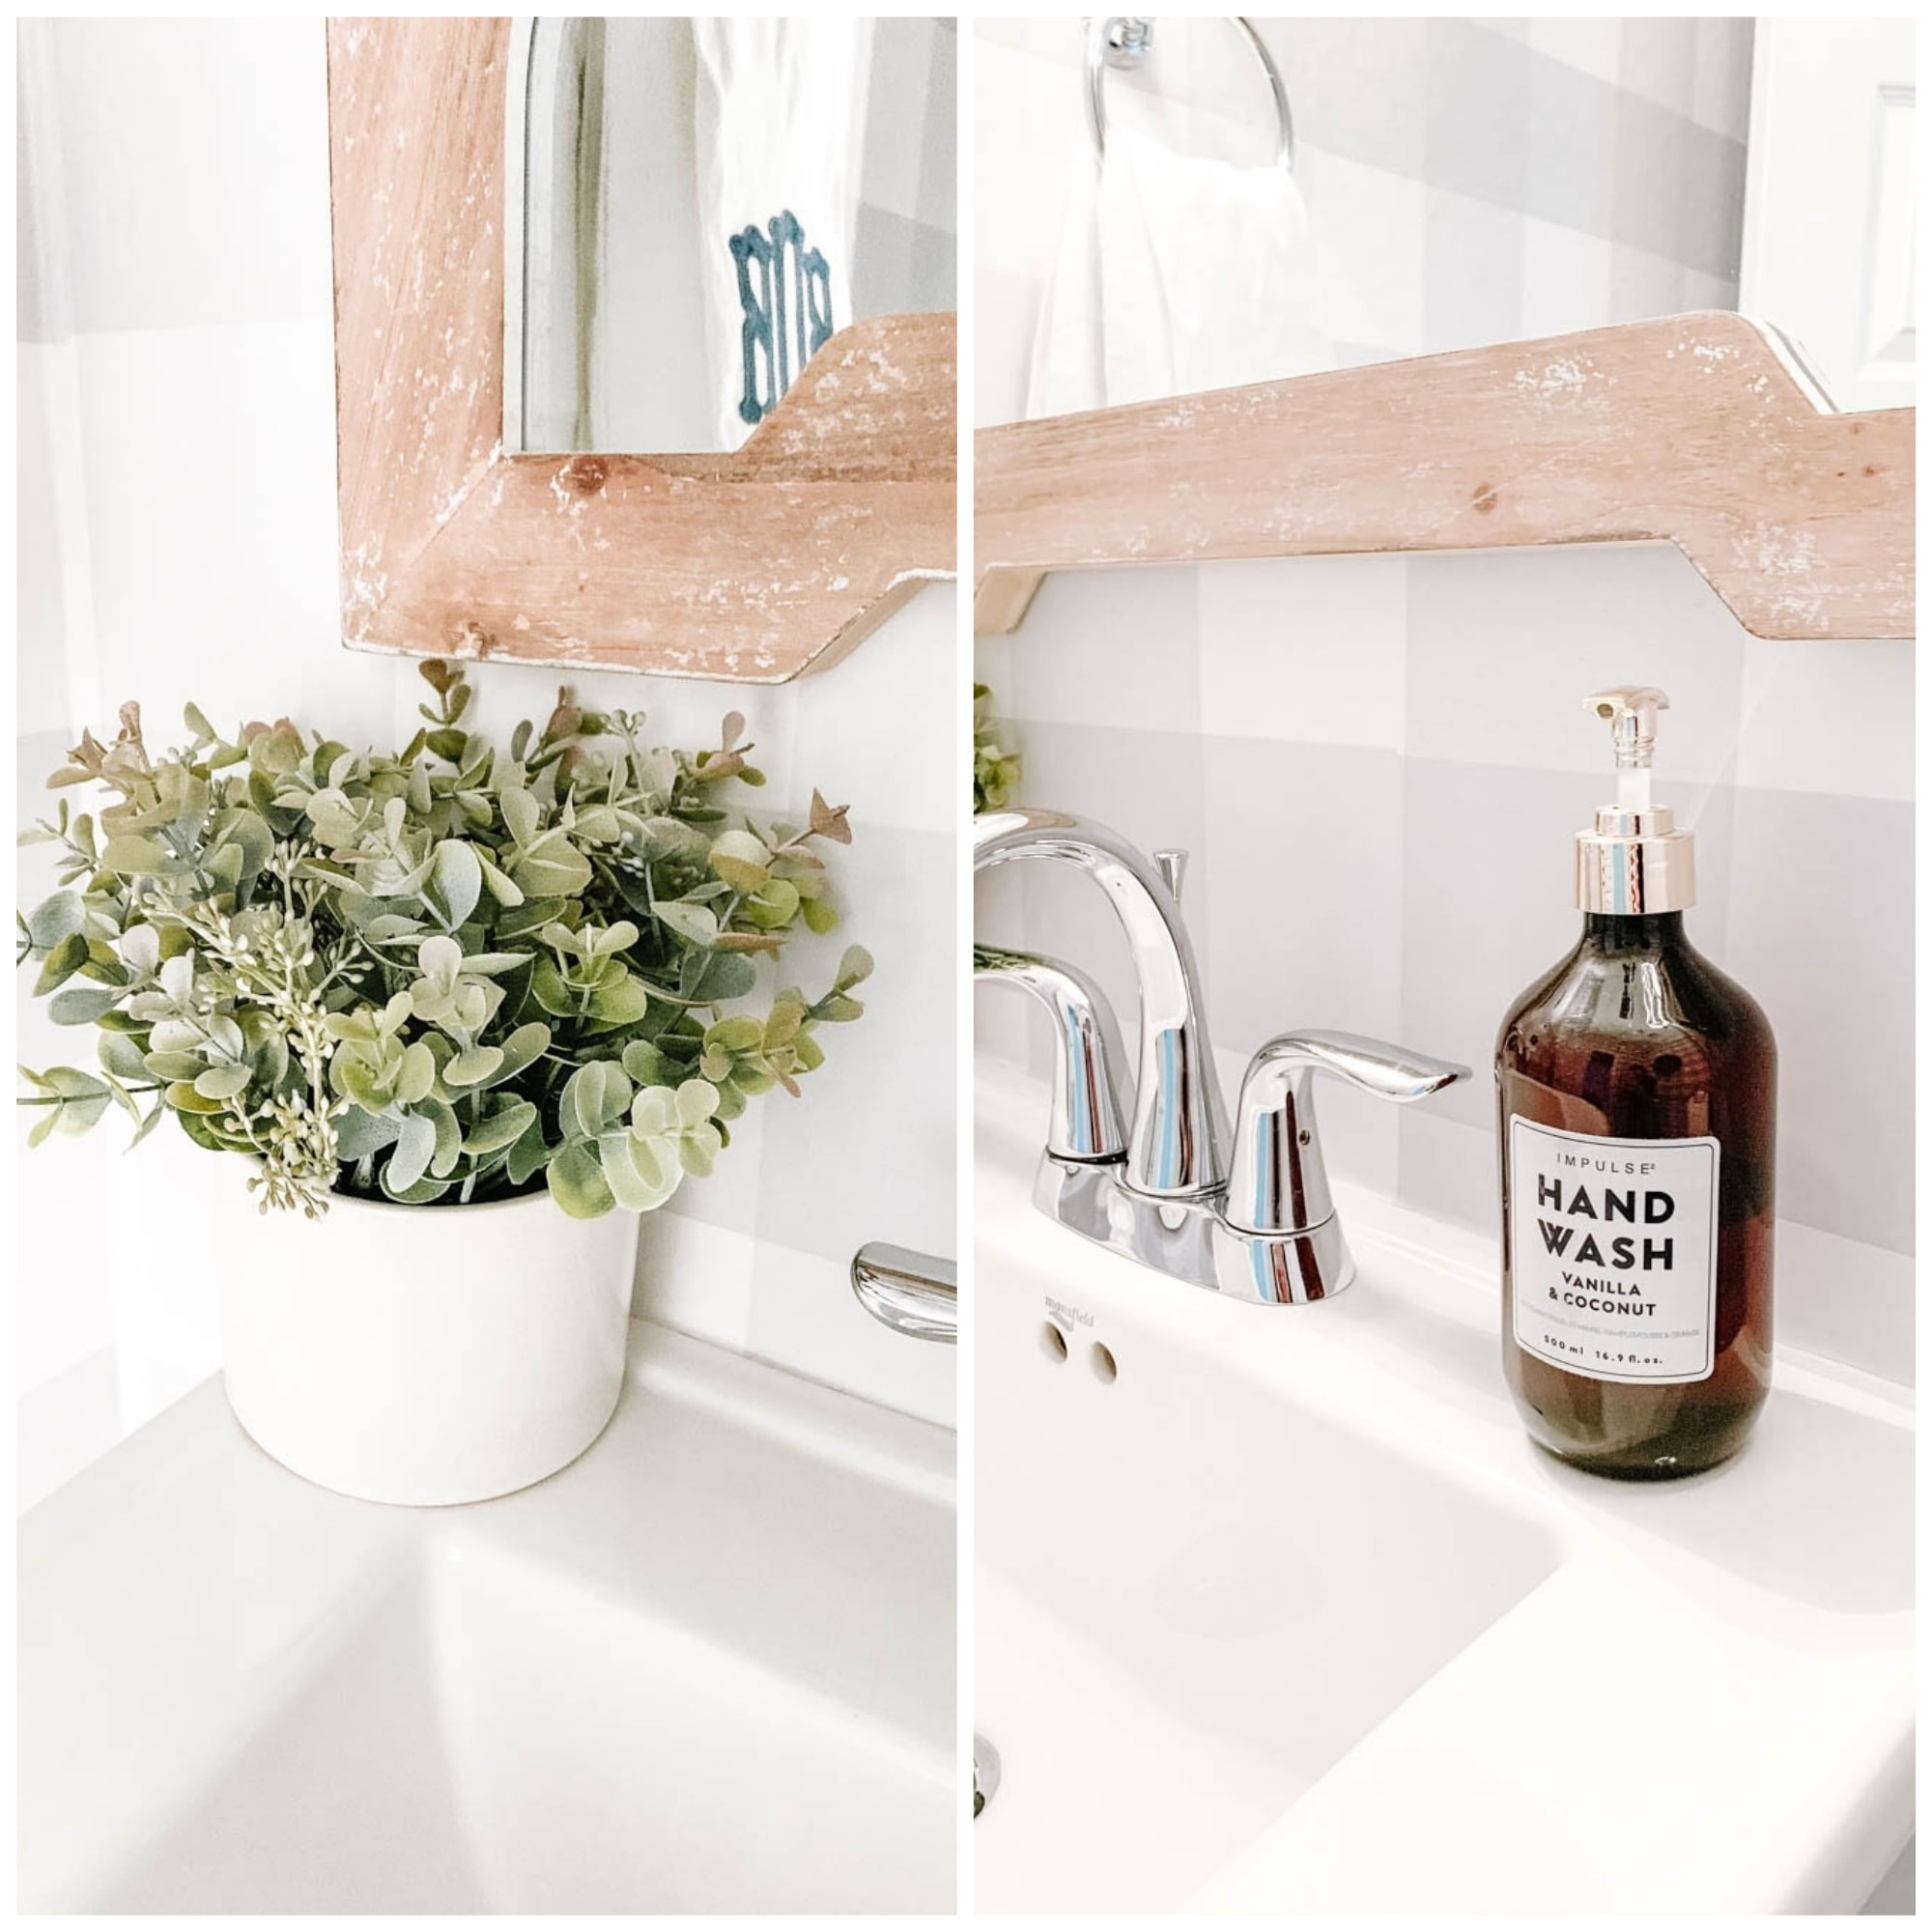 Bathroom details make this powder bathroom makeover warm and inviting. #ABlissfulNest #bathroom #bathroomideas